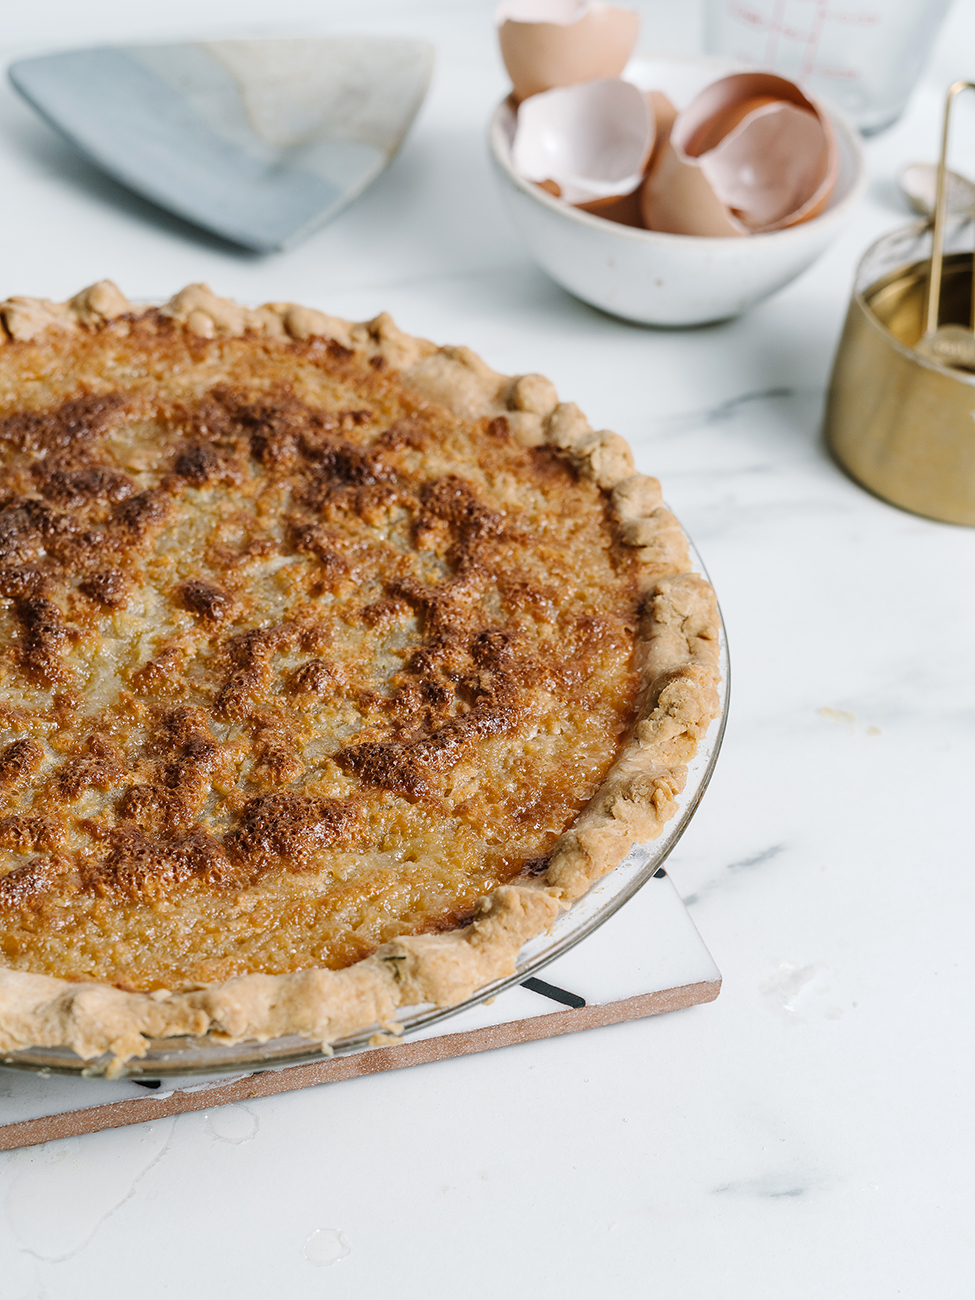 Buttermilk pie on a marble worksurface